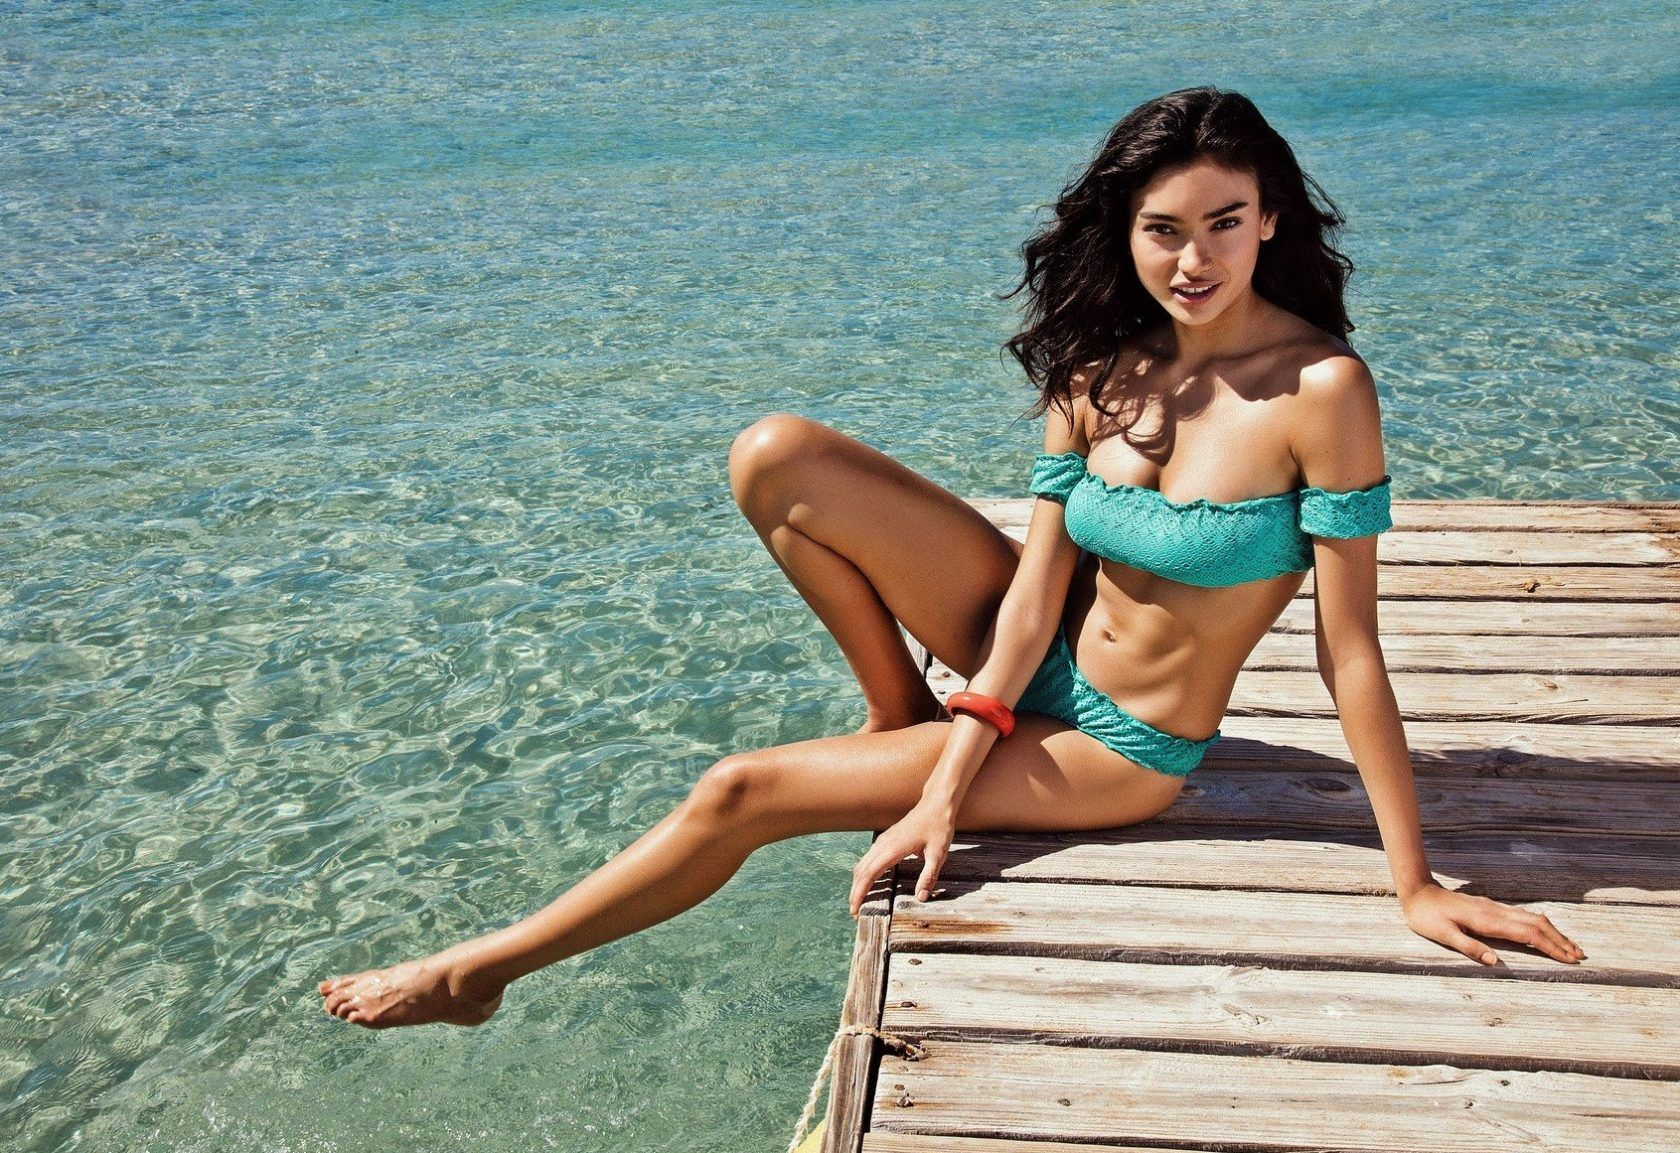 Shes posed for some of the hottest brands and mags on the planet and for her latest turn, Australian-Swedish-Indian model Kelly Gale looks out of this world. The 23-year-old Chanel, Victorias Secret and Sports Illustrated Swimsuit star has now been snapped up by Italian brand Yamamay, and is seen here duly modeling some swimsuits from the summer 2018 collection. Posing in front of palm trees, the ocean in the background, and sitting on a wooden dock, Kelly strike some seriously sexy poses for the Puerto Rico campaign, which is also raising awareness about the environment with a #savetheocean hashtag. And if we are to expect more shots of Kelly posing in her bikini by the ocean, then its certainly worth saving. 30 May 2018, Image: 373412039, License: Rights-managed, Restrictions: World Rights, Model Release: no, Credit line: Profimedia, Mega Agency